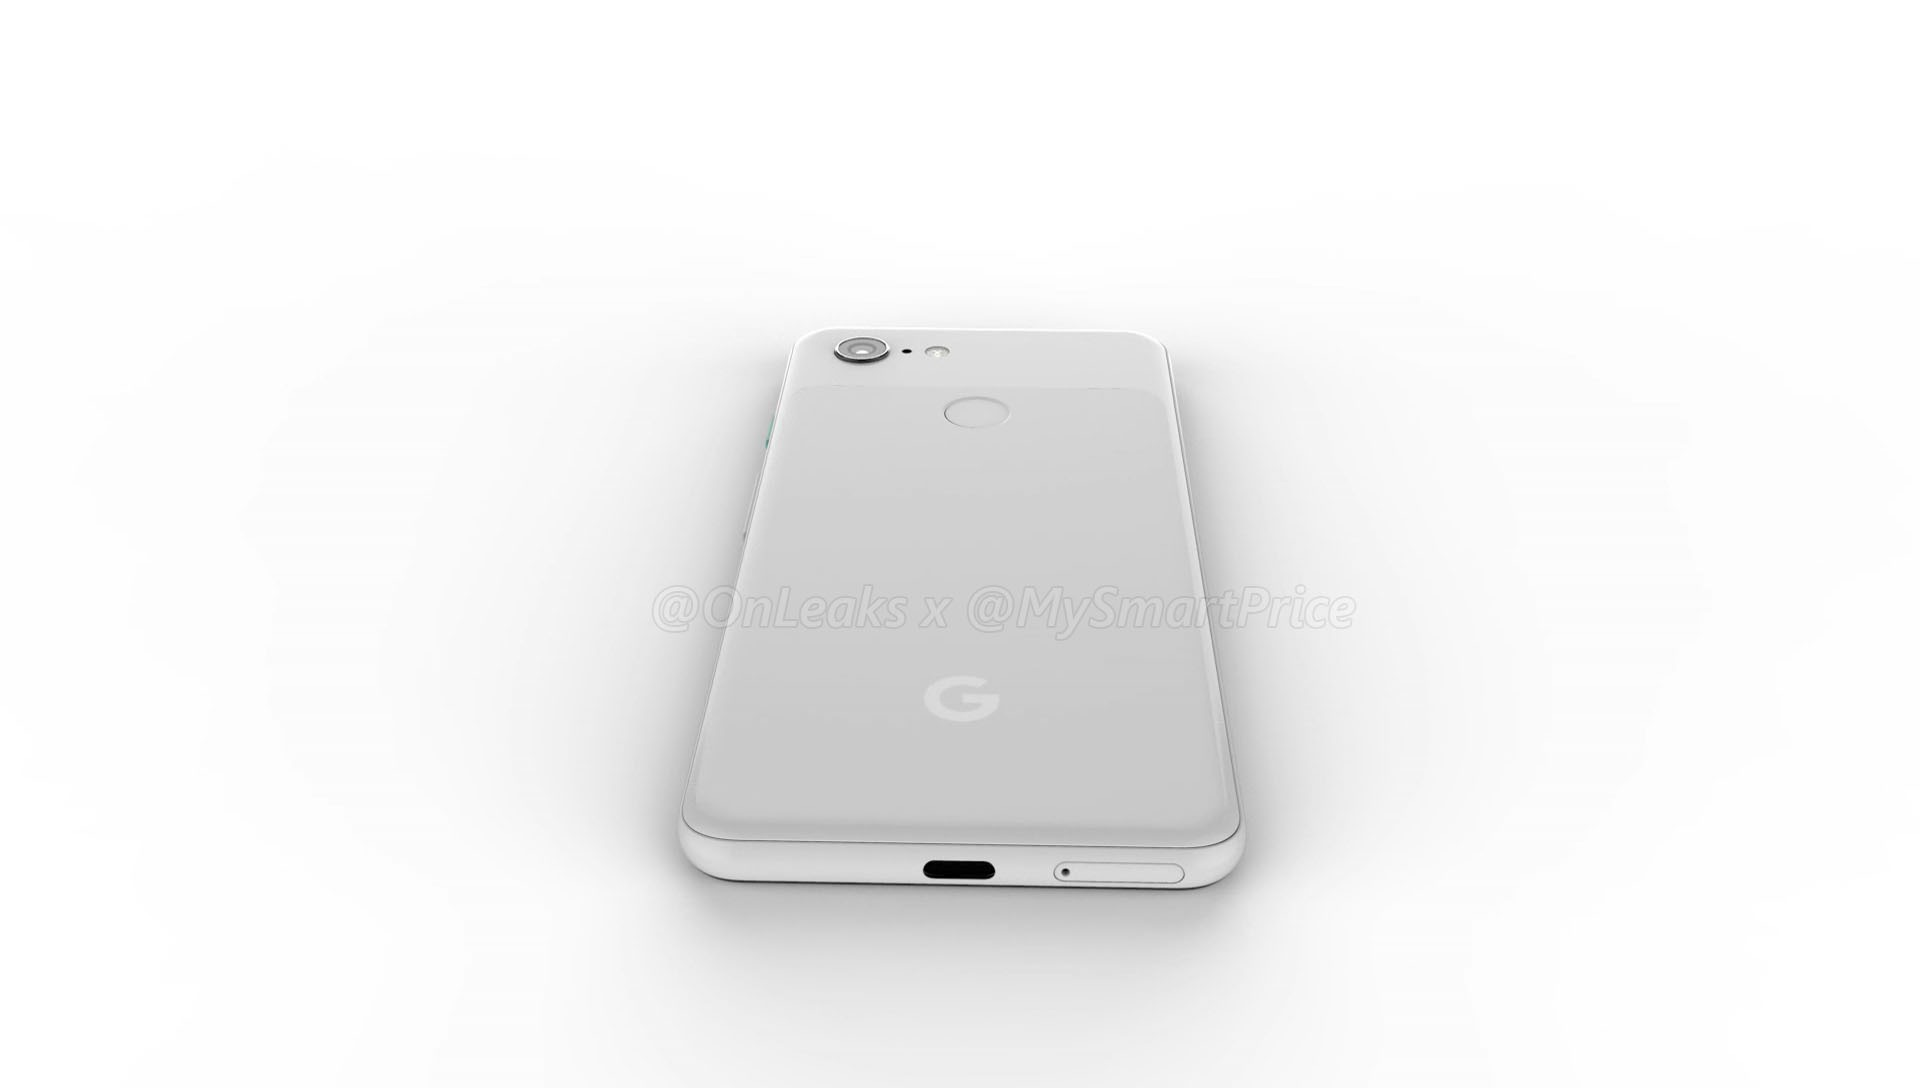 Google Pixel 3 & Pixel 3 XL - Here's our best look at the design 10